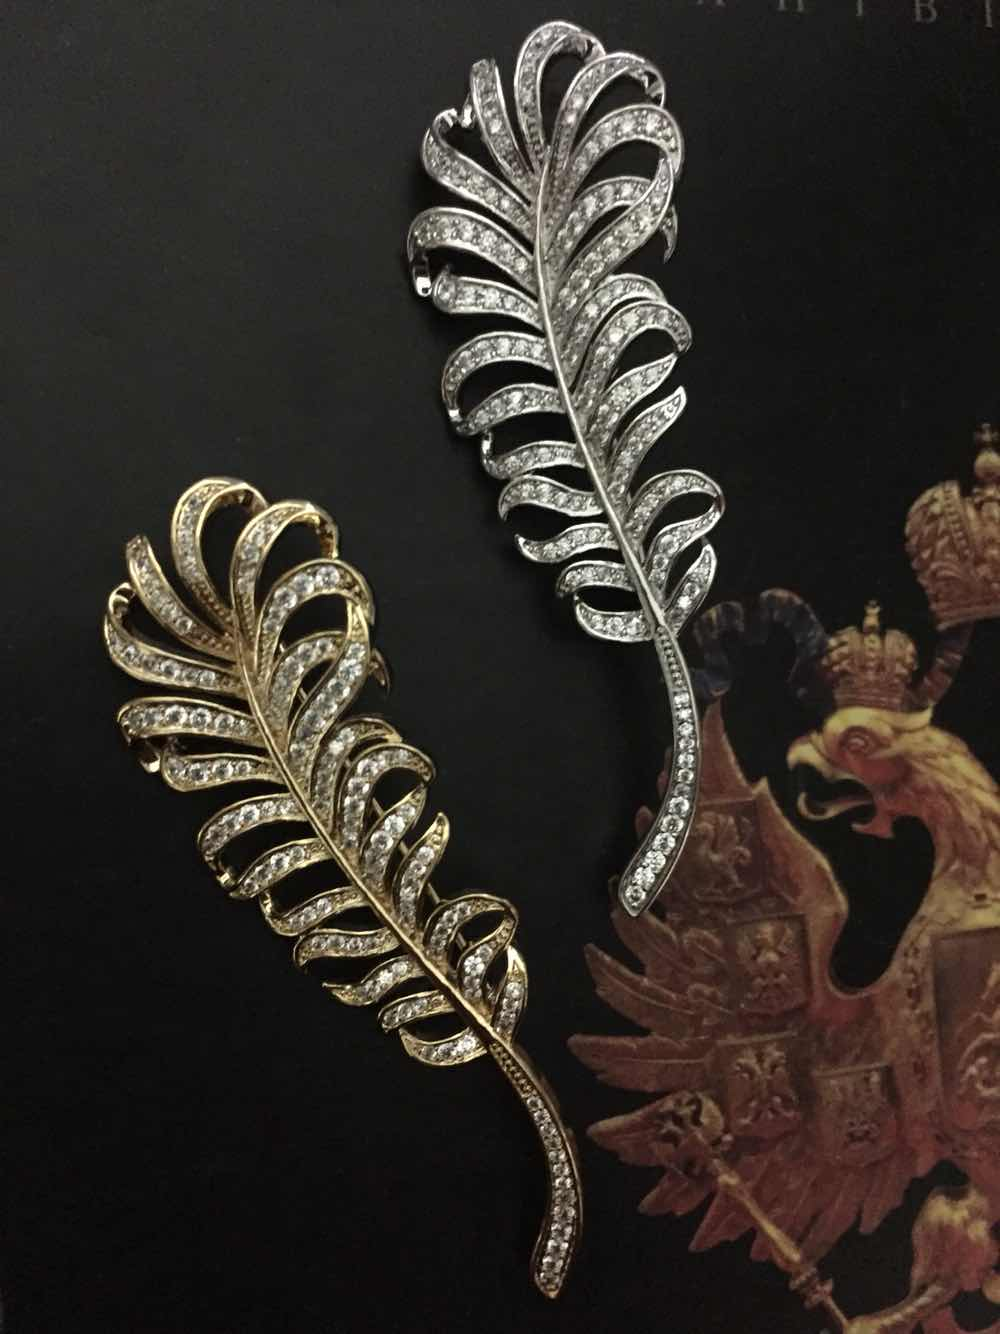 Phoenix Peacock Feather Brooch Pin European Court retro zircon simple geometry British gift box packaging accessories